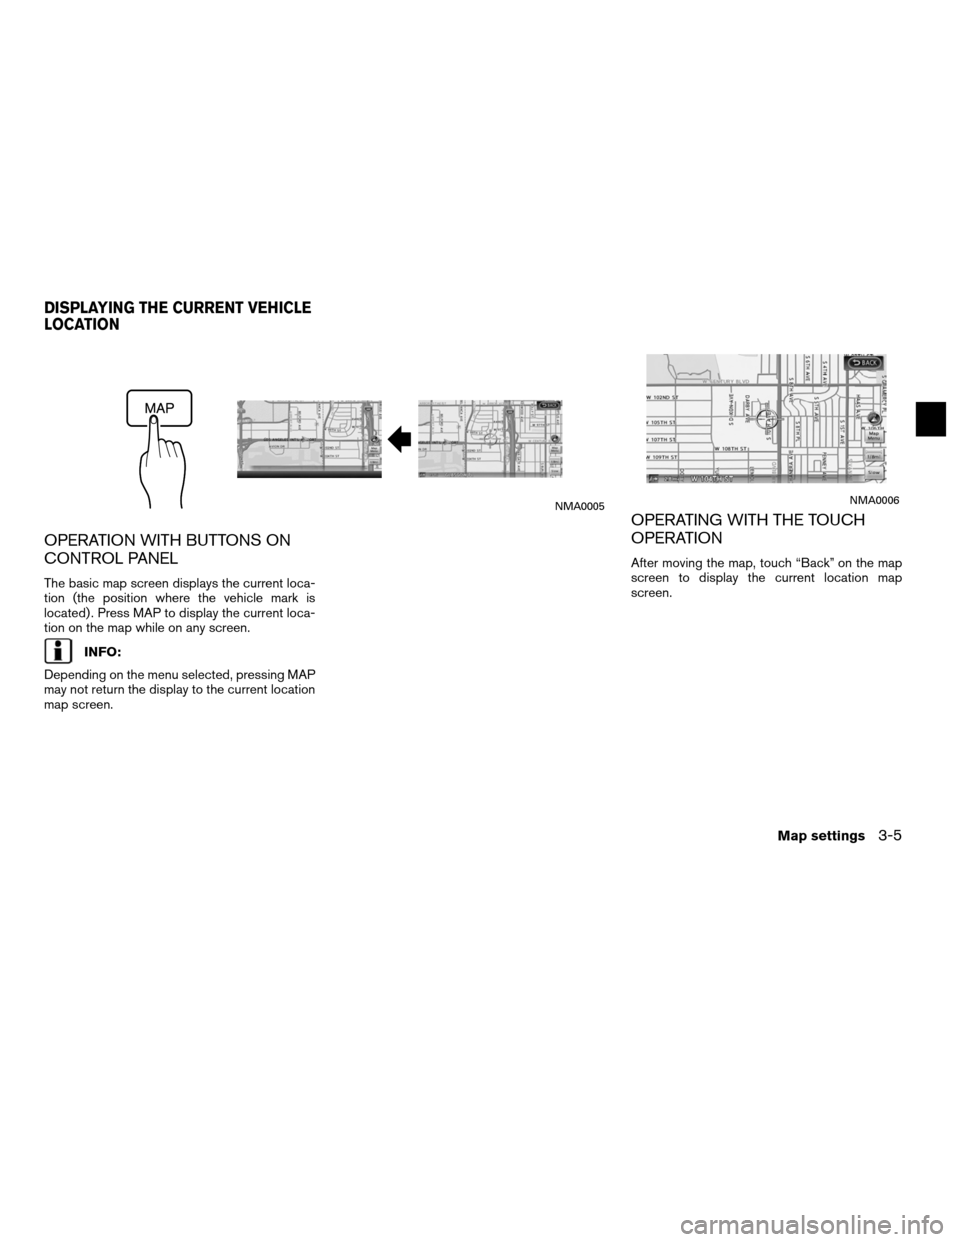 NISSAN ALTIMA HYBRID 2011 L32A / 4.G Navigation Manual, Page 51